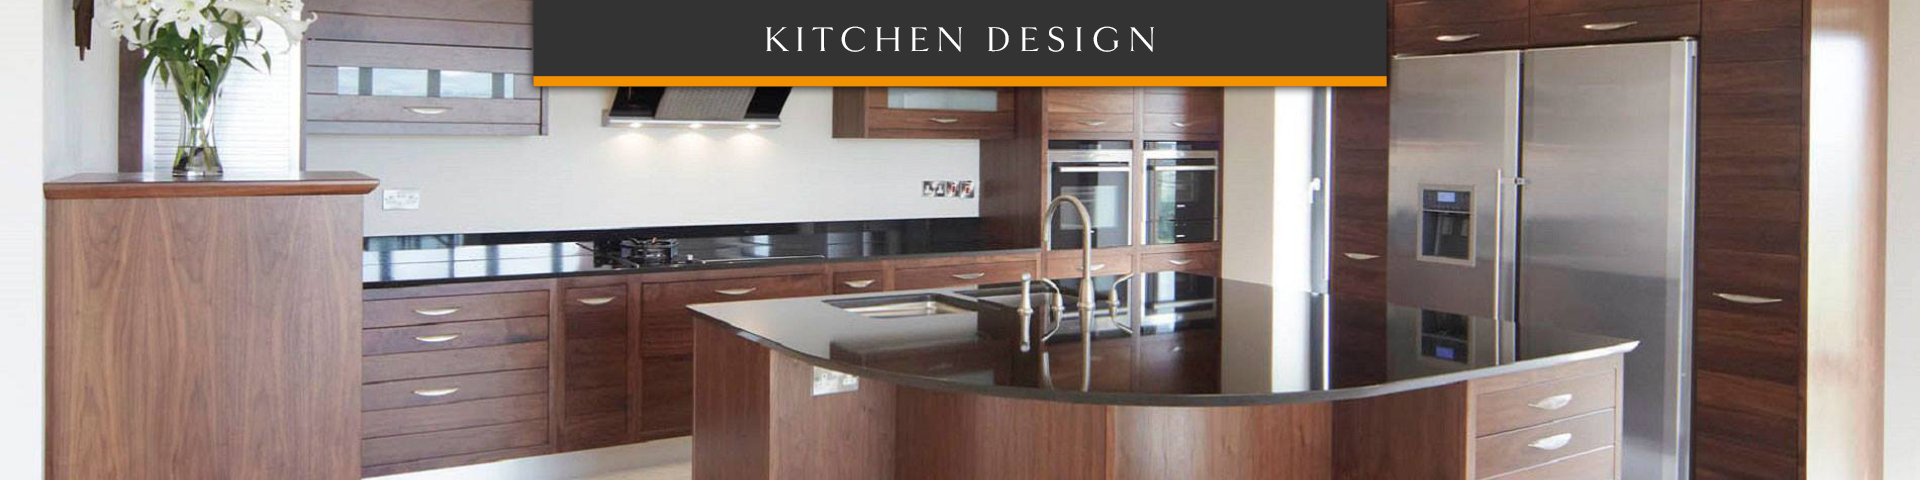 3d cad kitchen design in east kilbride glasgow clydebank for Kitchen ideas glasgow